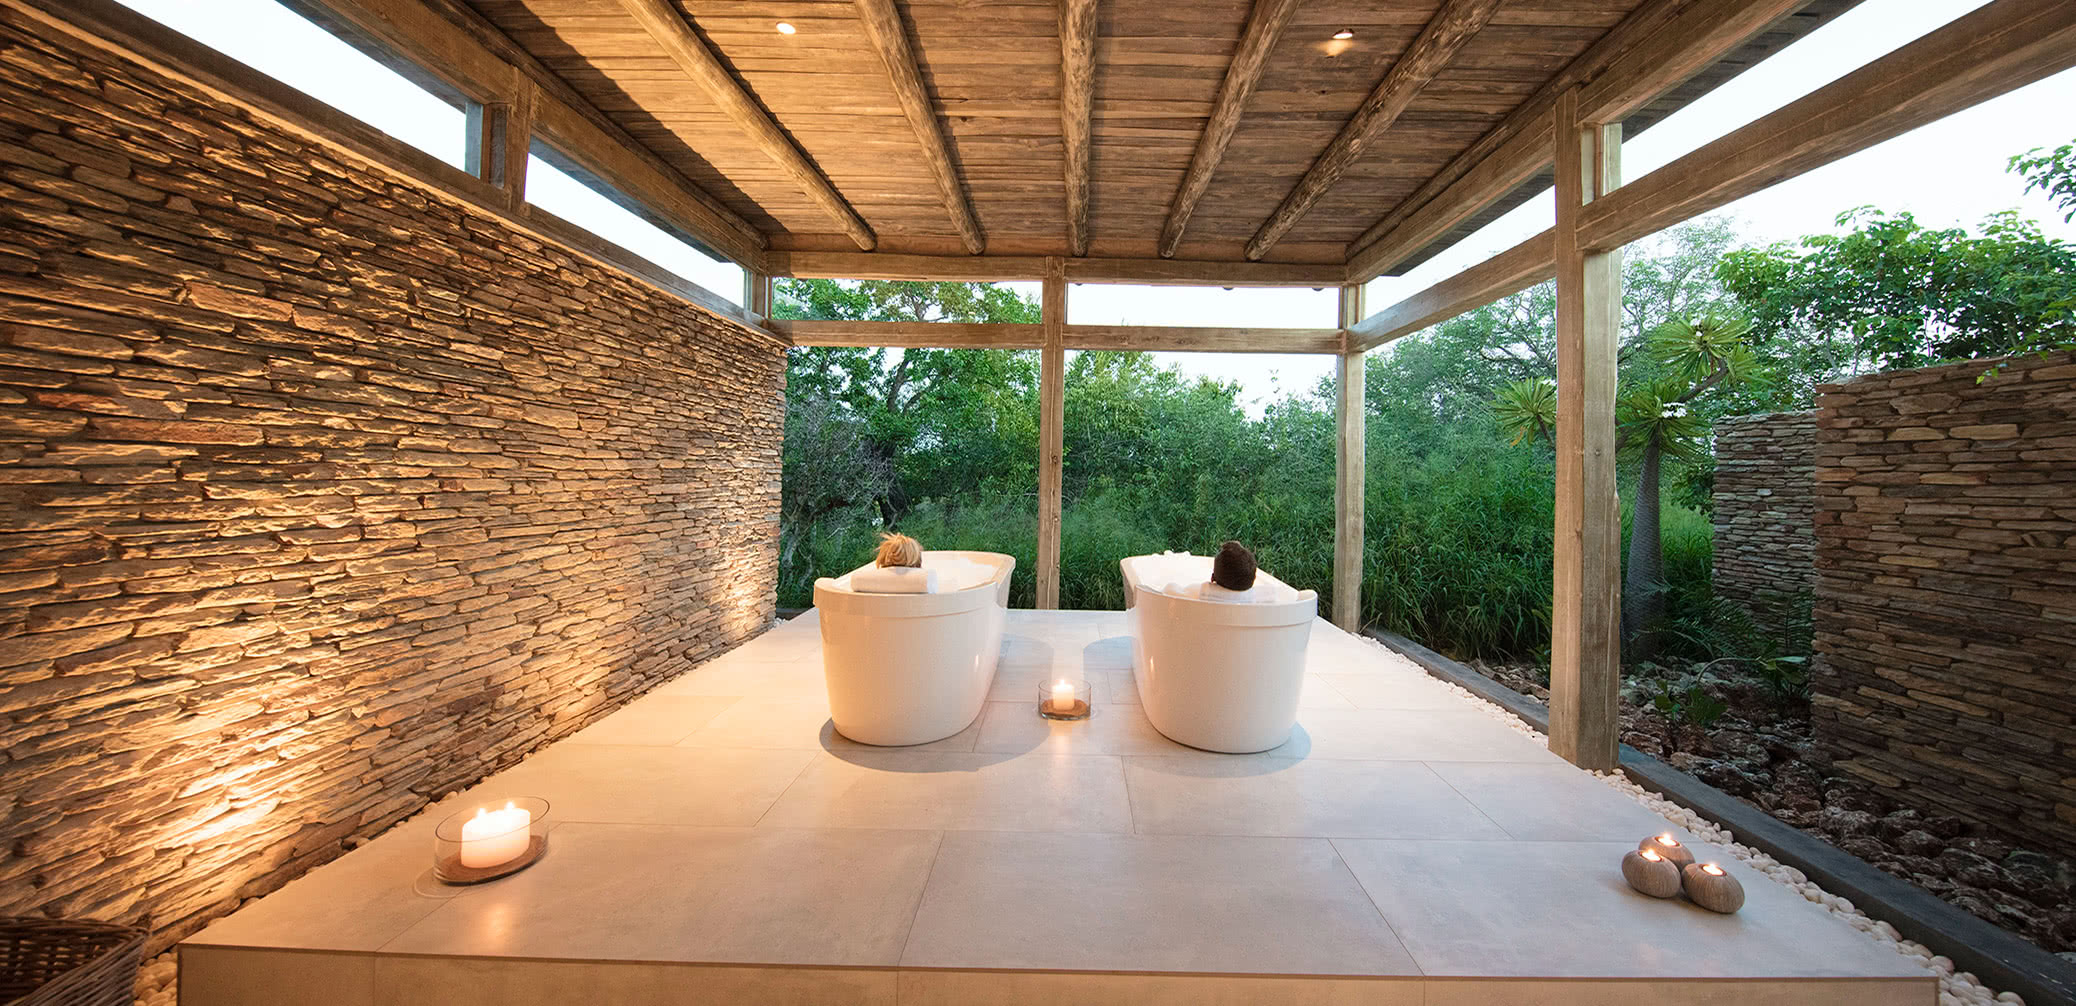 Best Safari Lodges In Africa With Bush Baths And Outdoor Showers